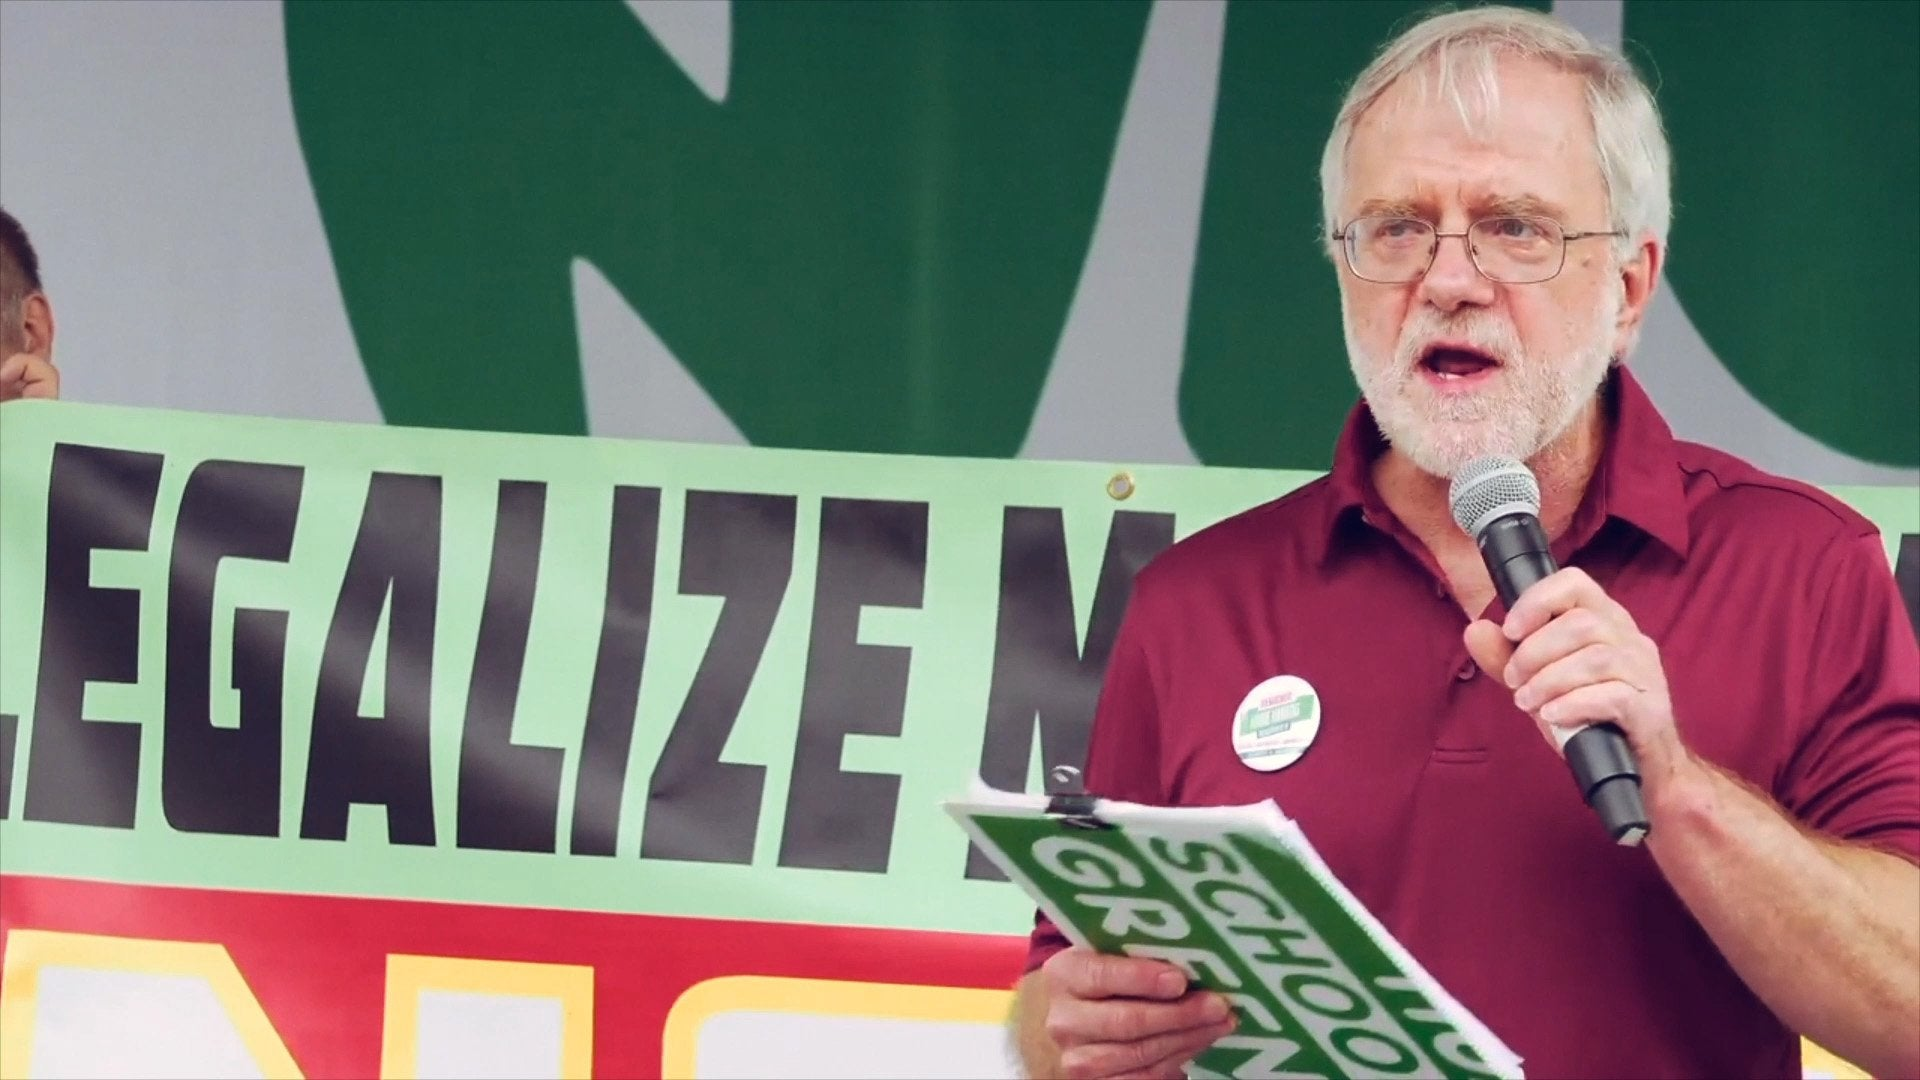 On #420, our position on legalization of cannabis (Howie Hawkins for President)